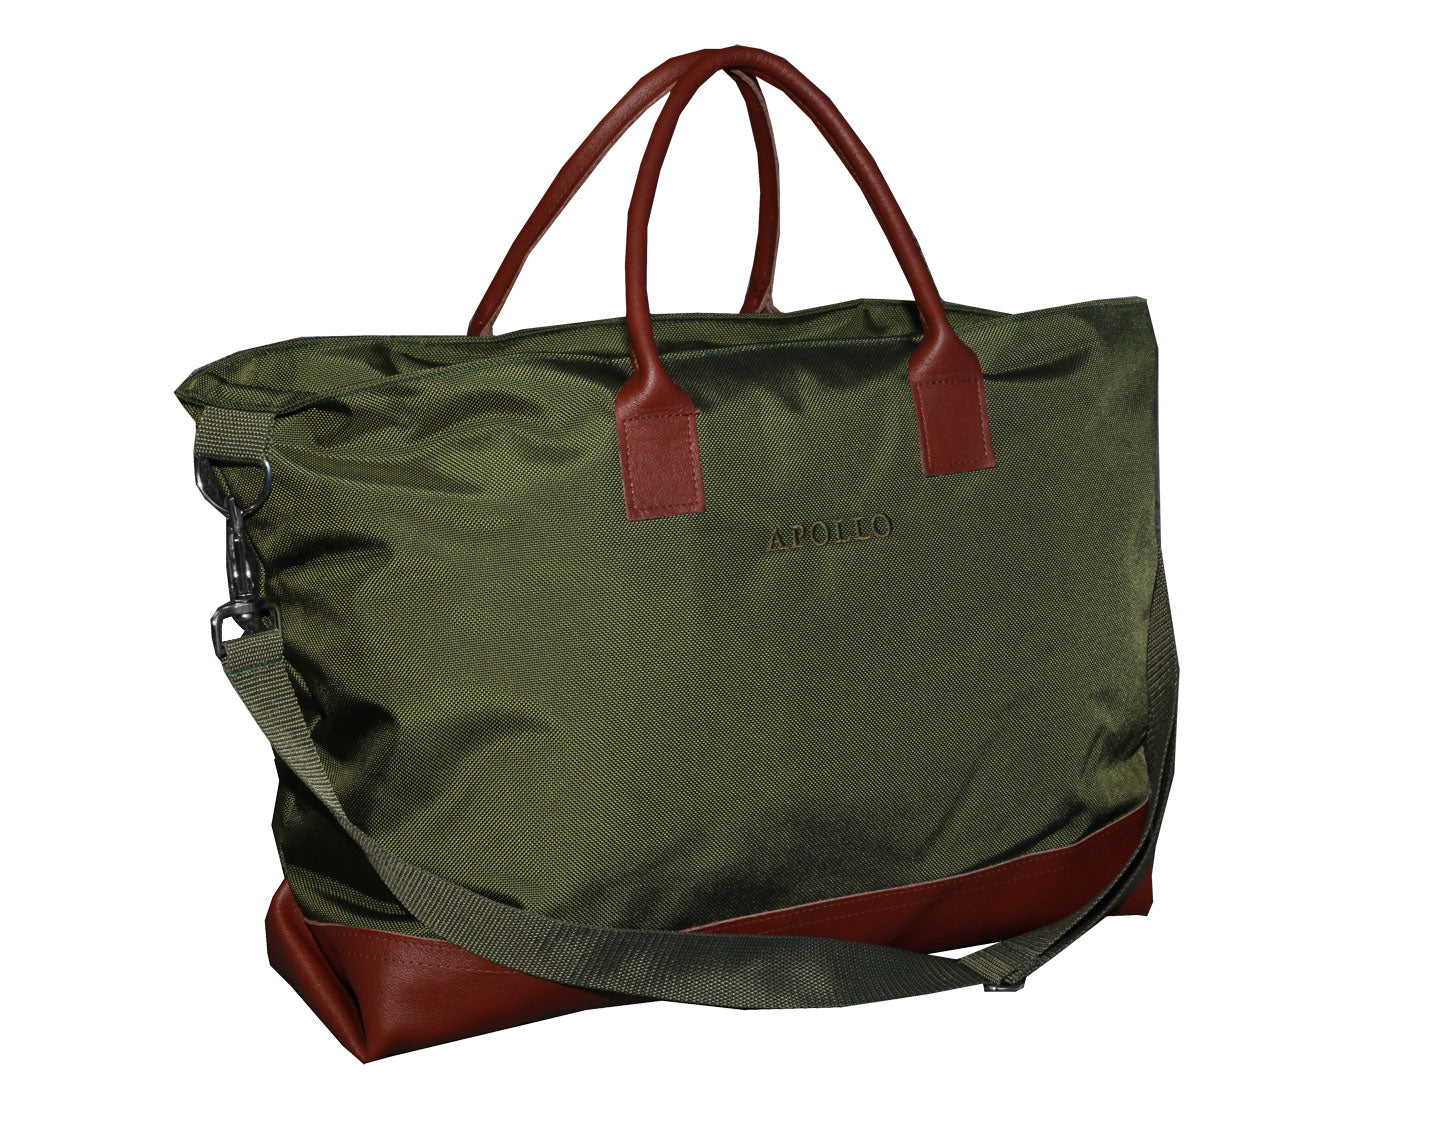 The Boston Tote